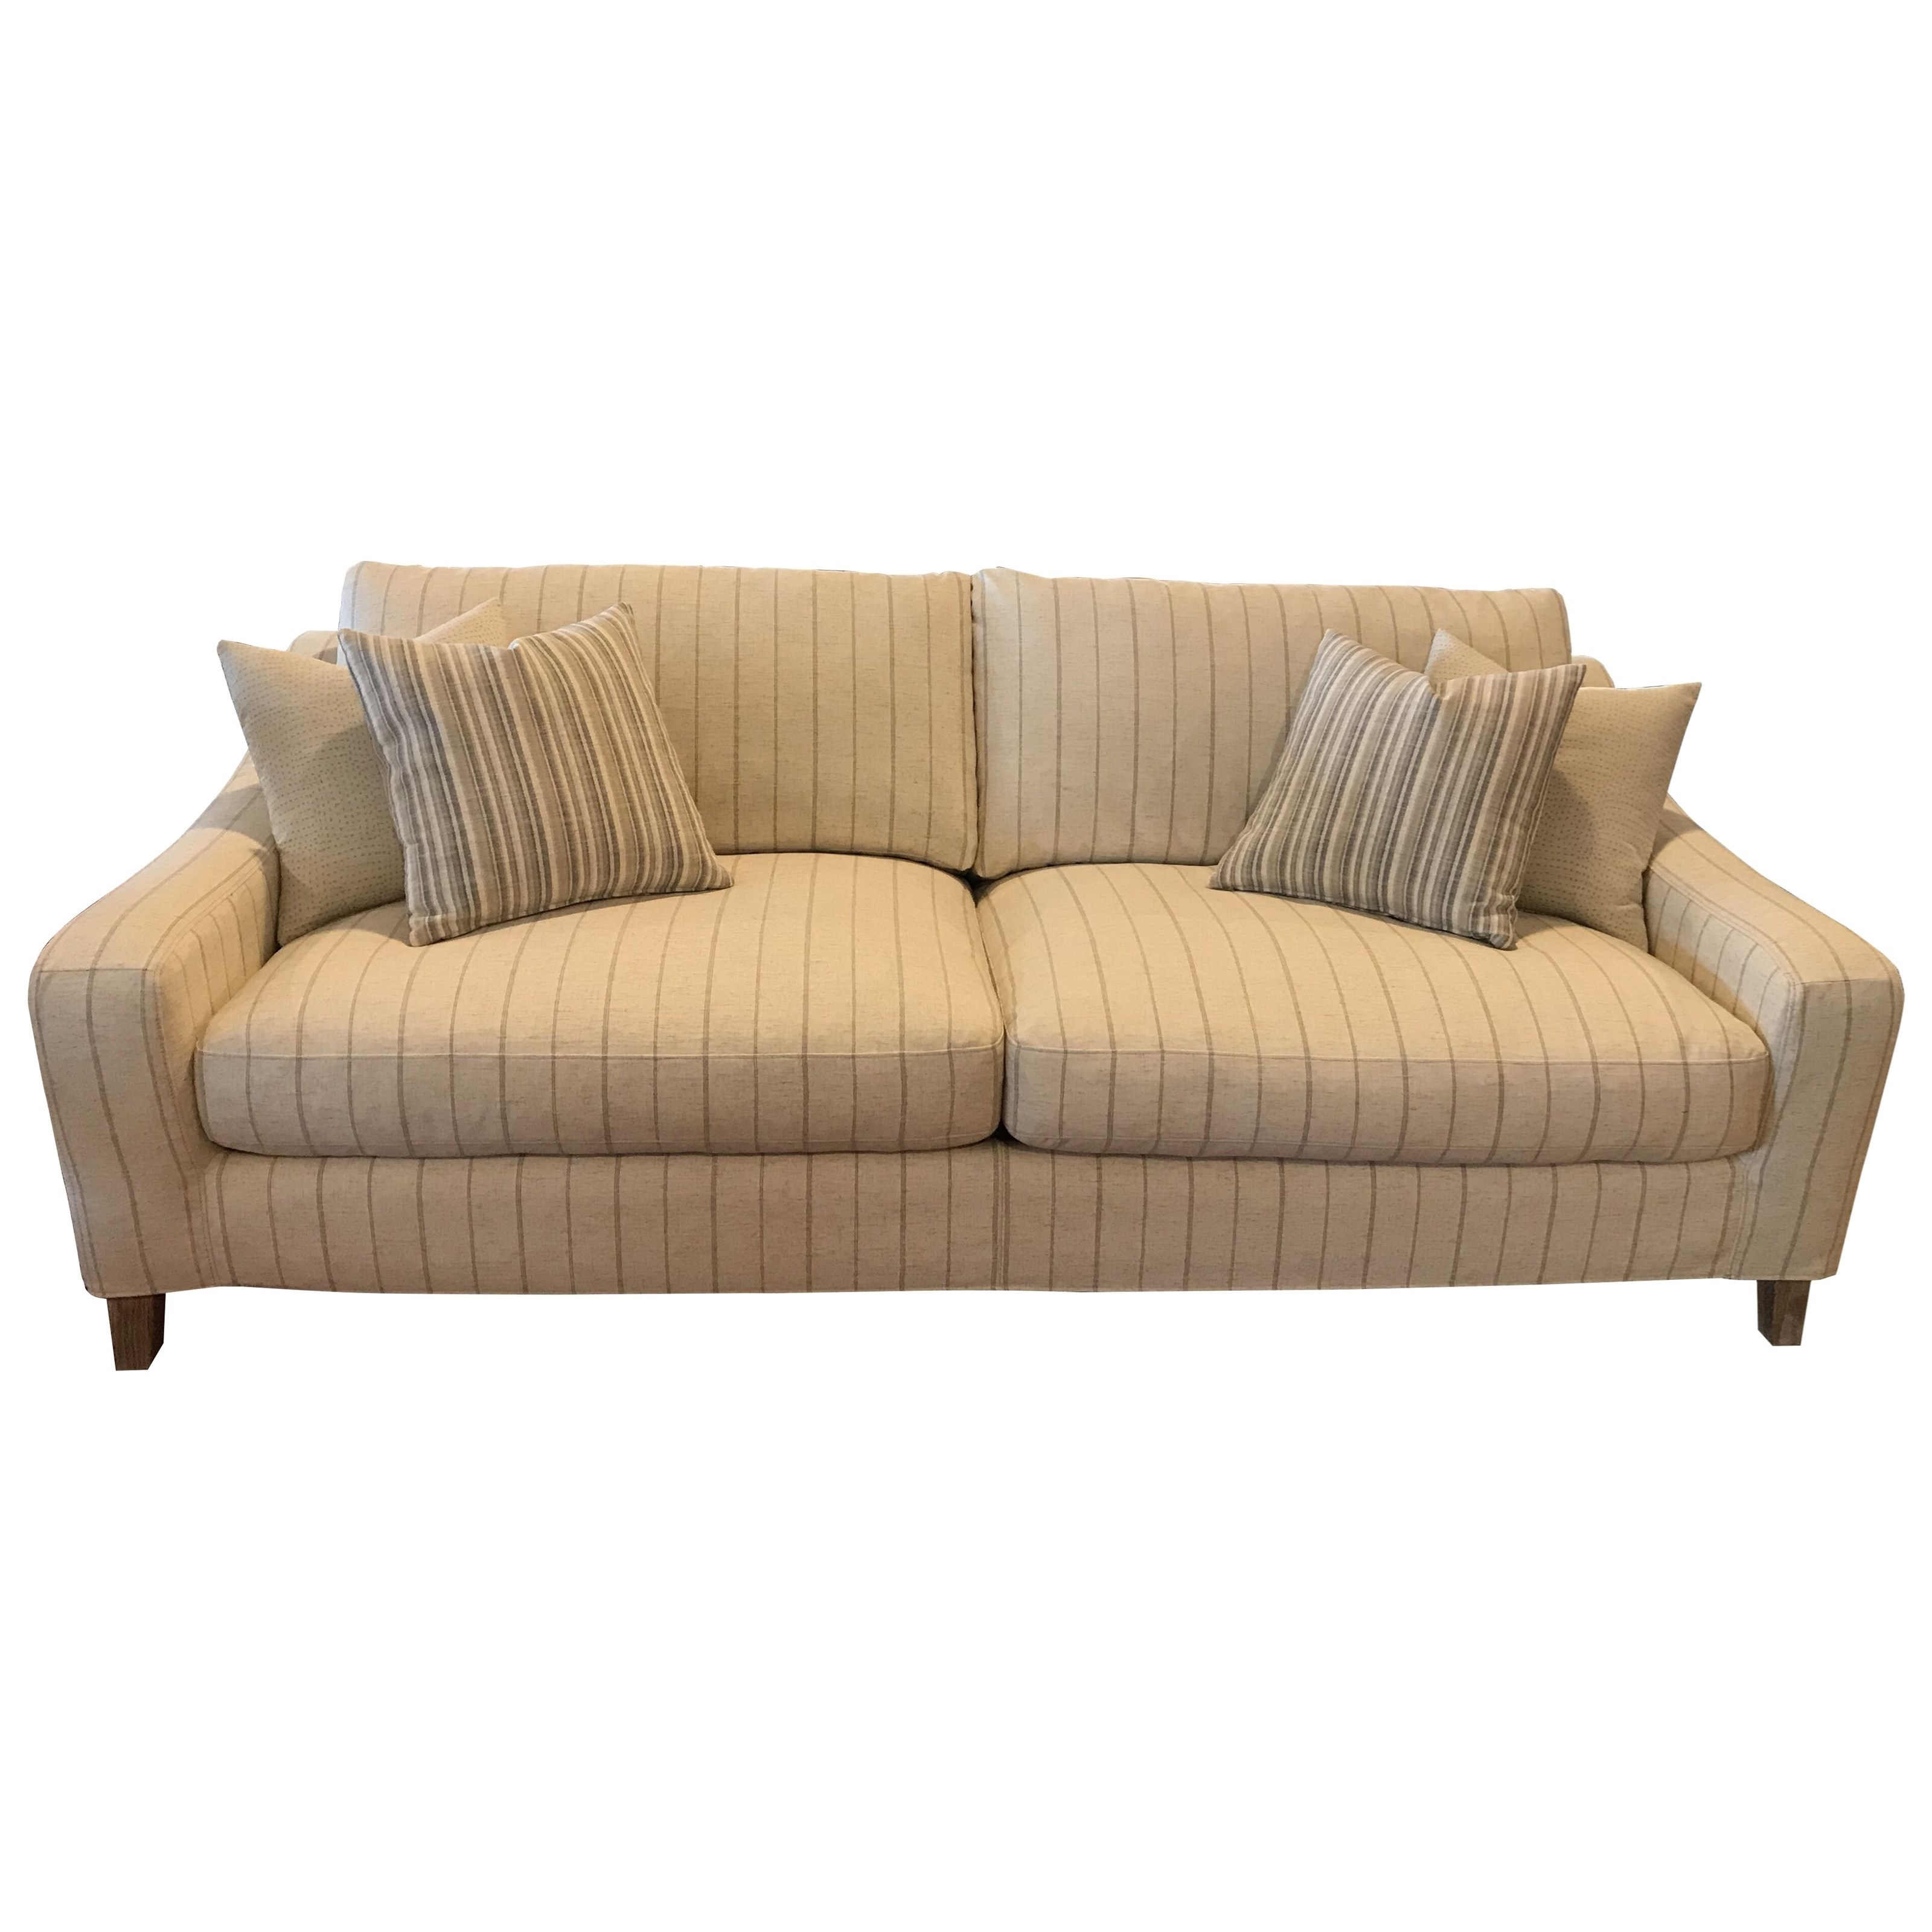 1836 Slip Covered Sofa by Synergy Home Furnishings at Johnny Janosik